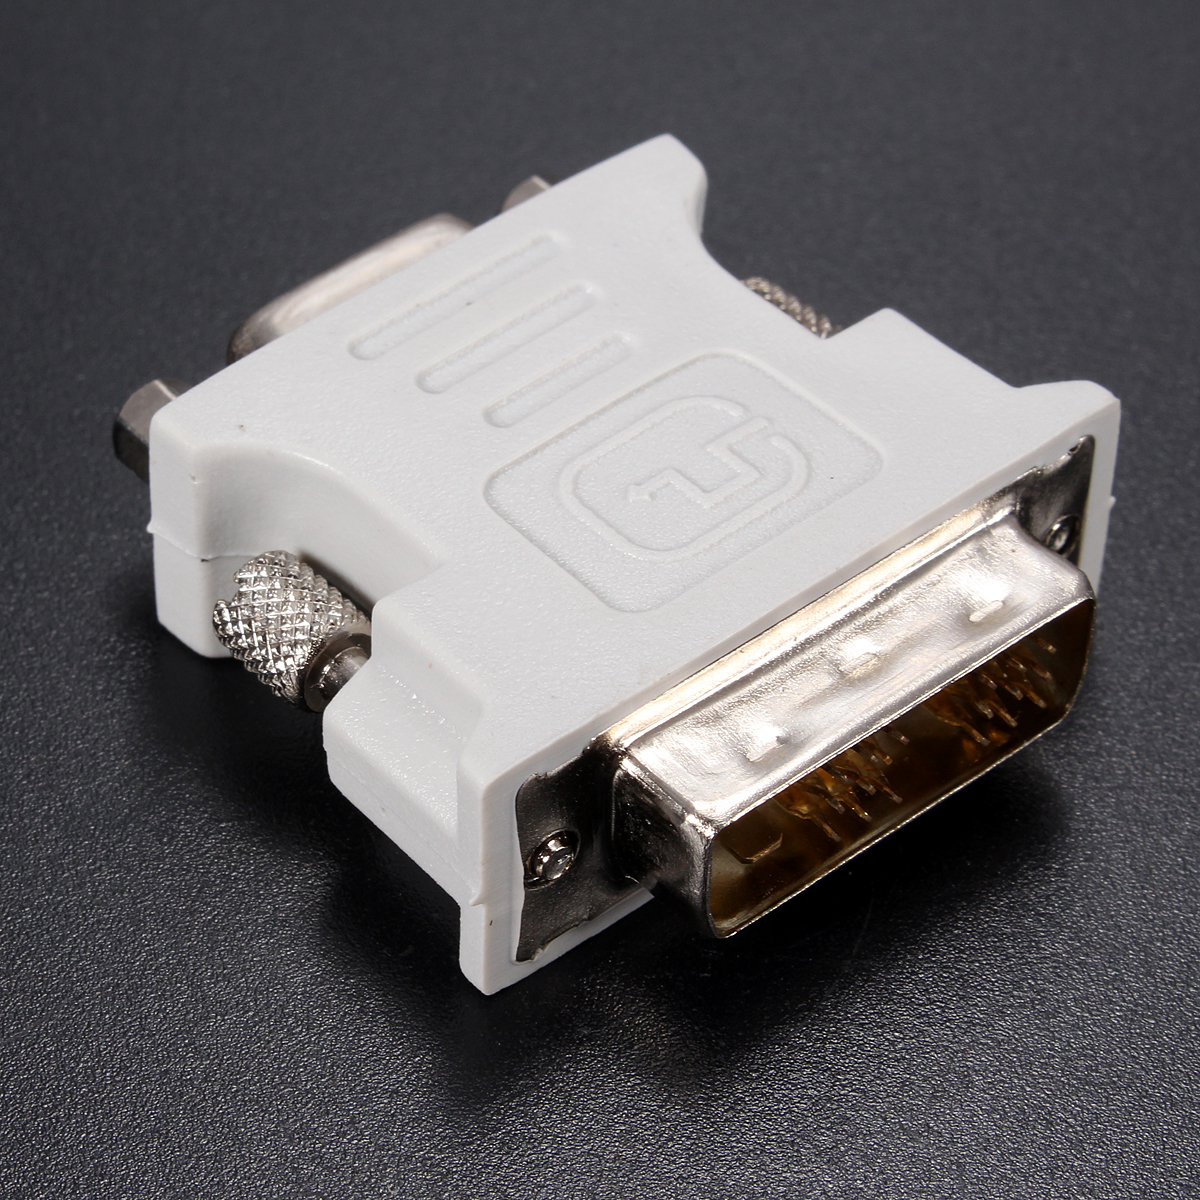 DVI-D (18+1) Dual Link Male To VGA 15 Pin Female Adapter